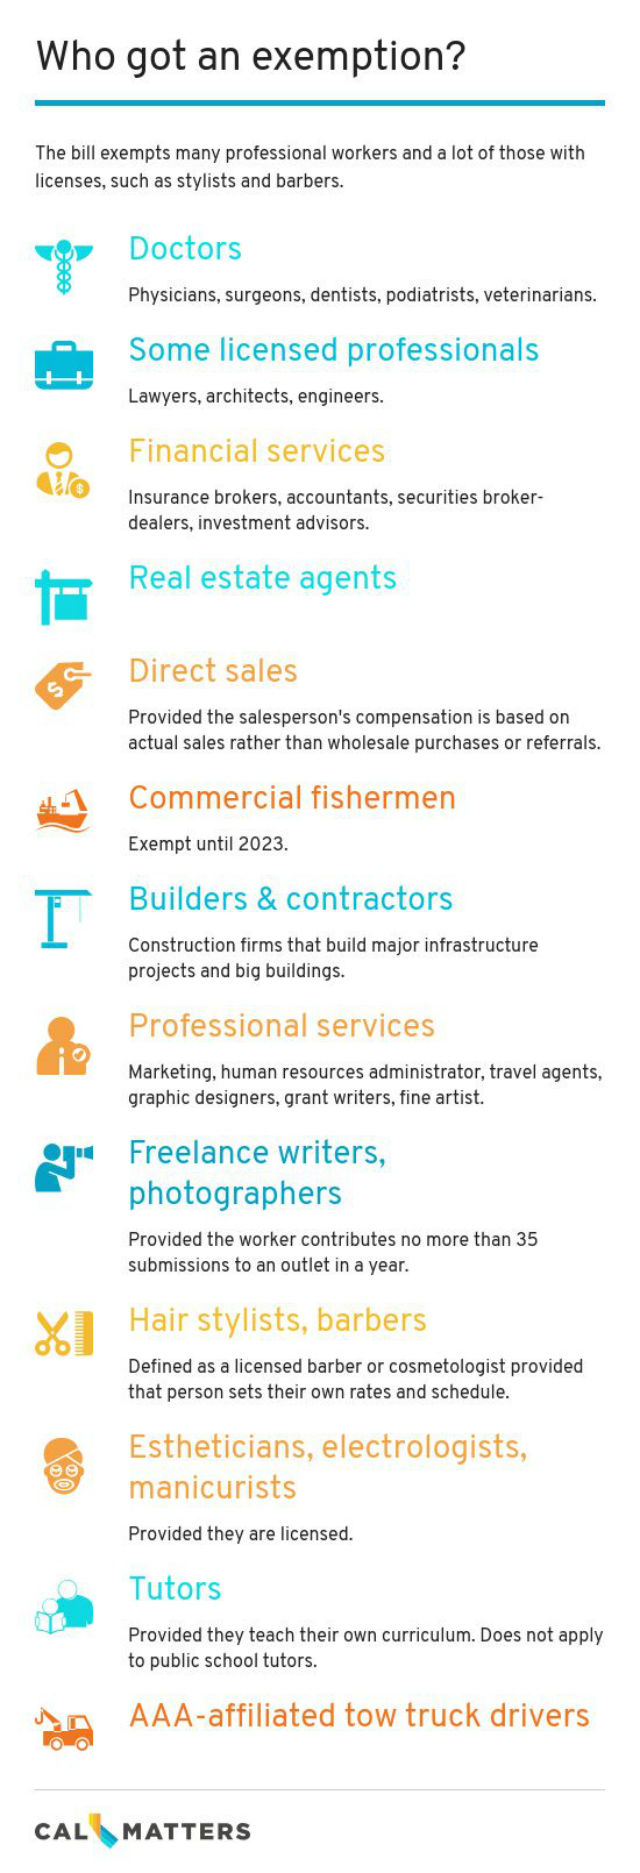 Chart lists some of the jobs exempted